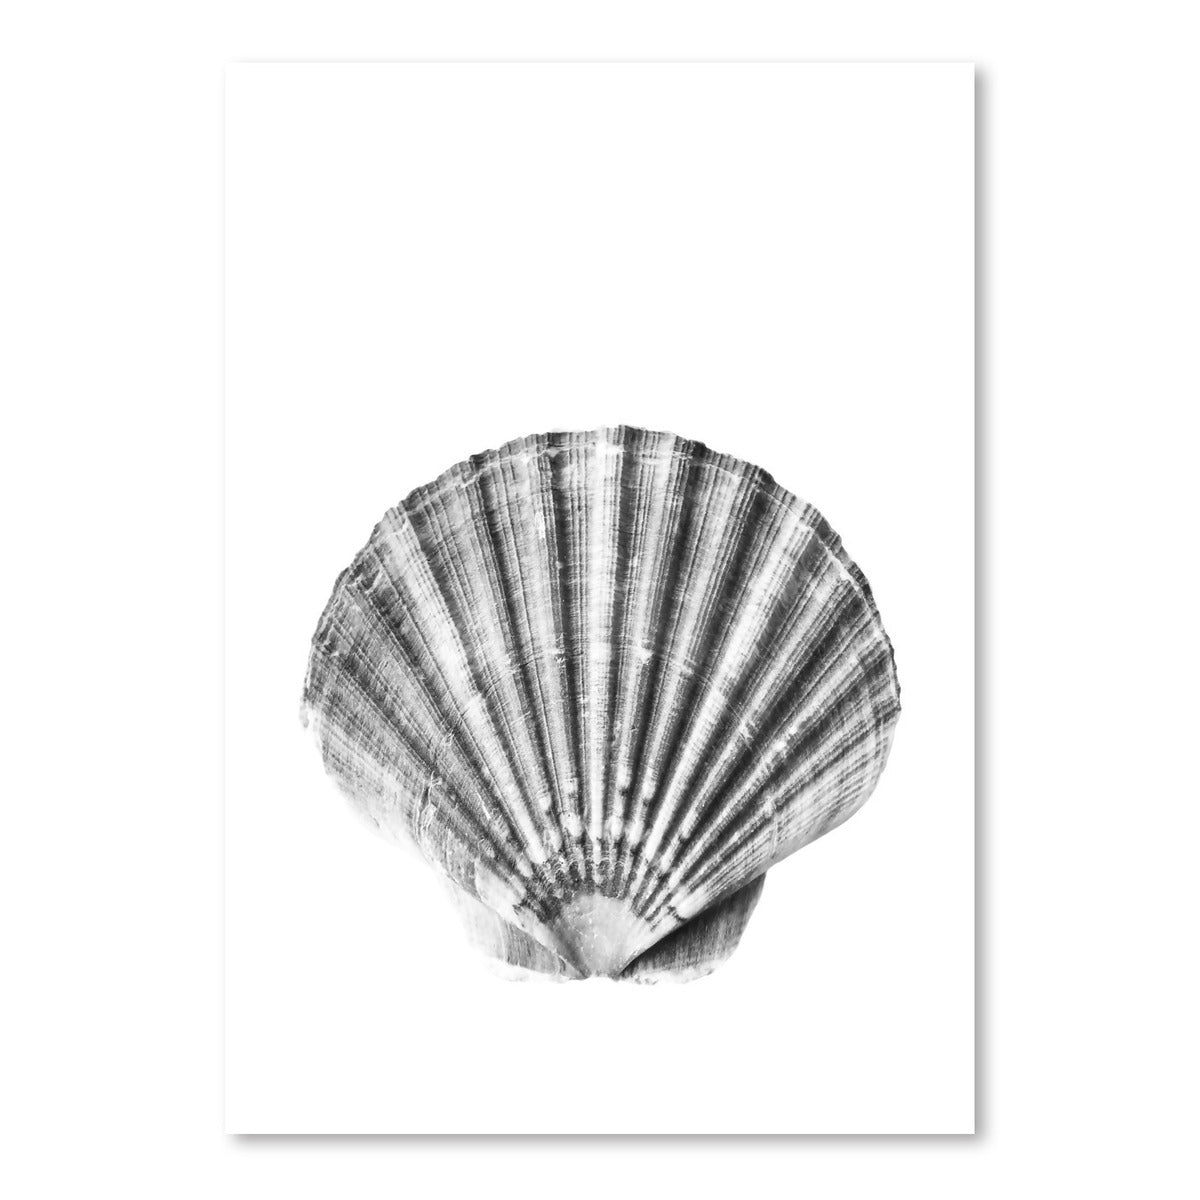 Sea Shell by Sisi and Seb - Art Print - Americanflat